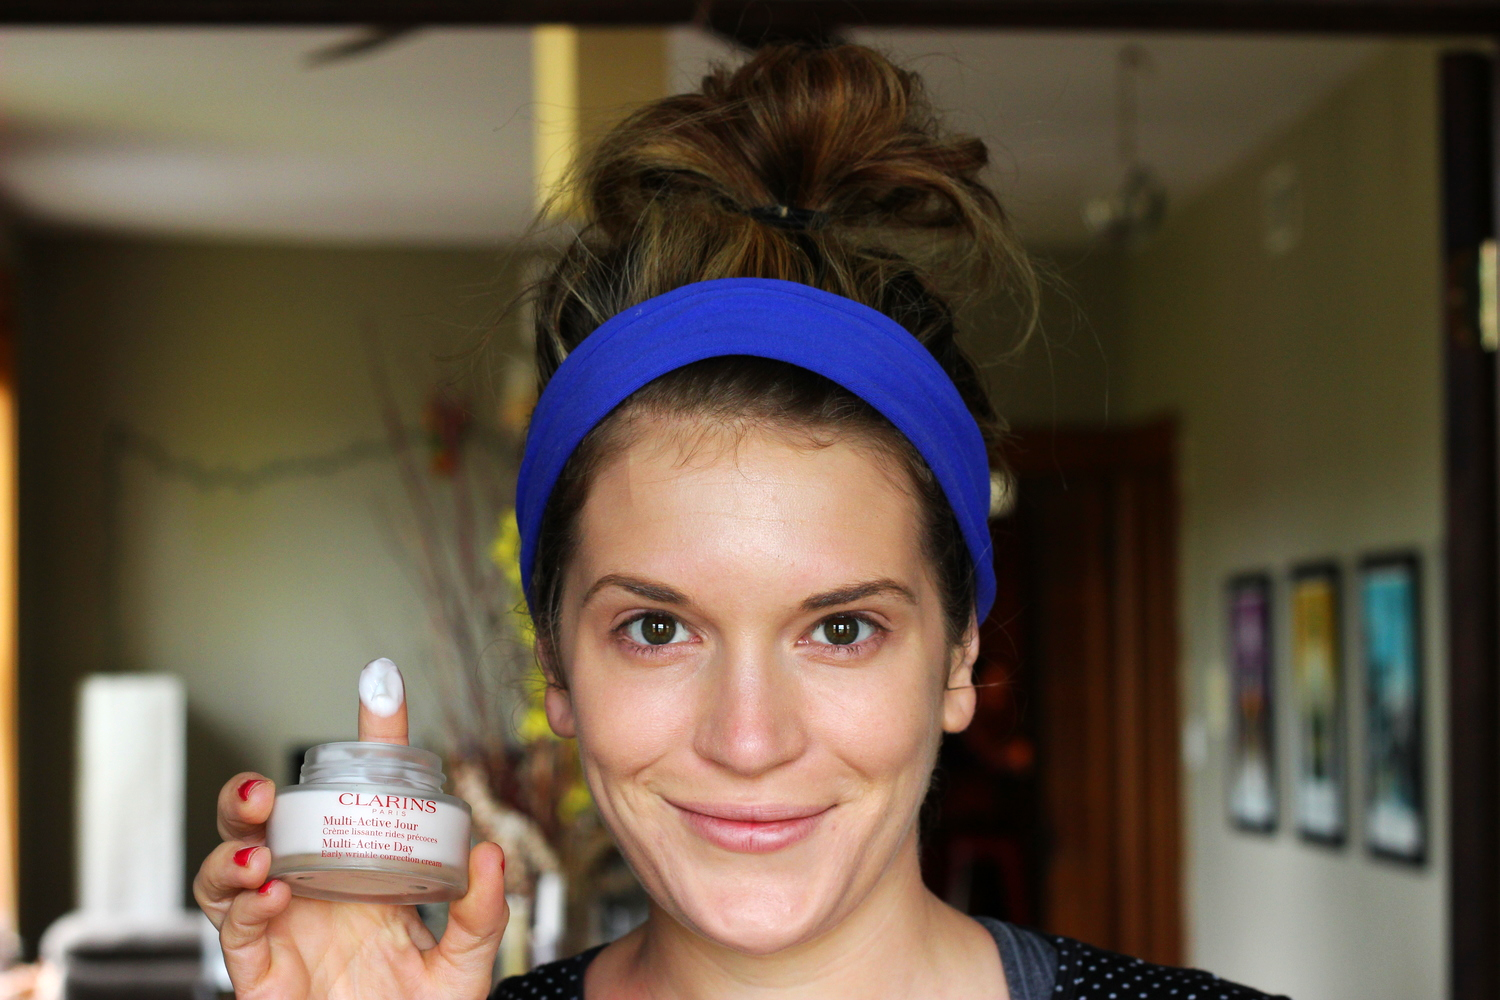 Clarins multi-active jour on belle meets world blog